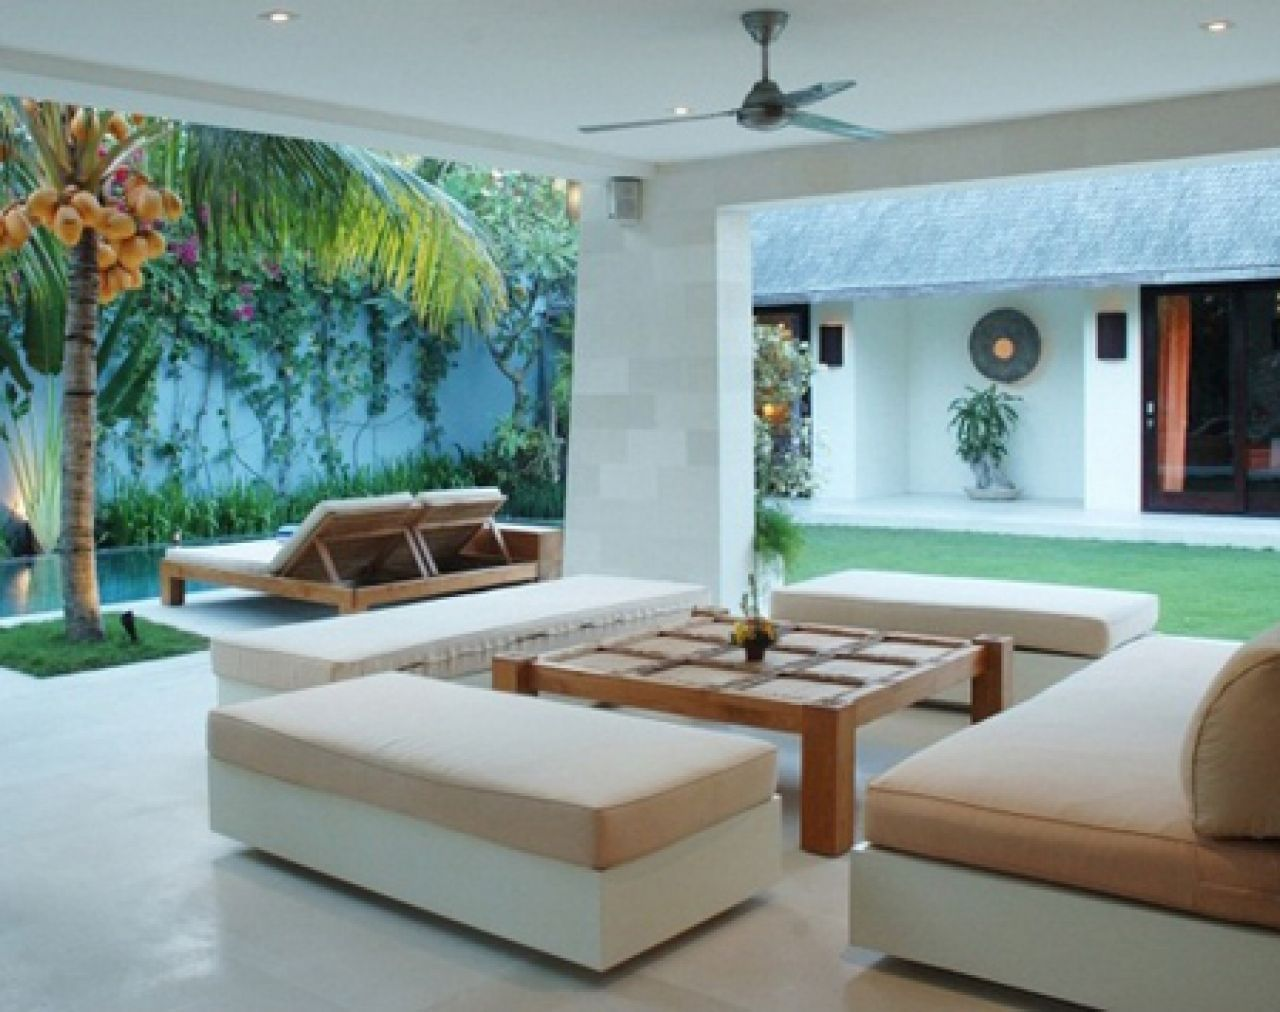 Wonderful Tropical Interior House With Lounge Sofa White And Beige Color Also Wooden  Table And Grass And